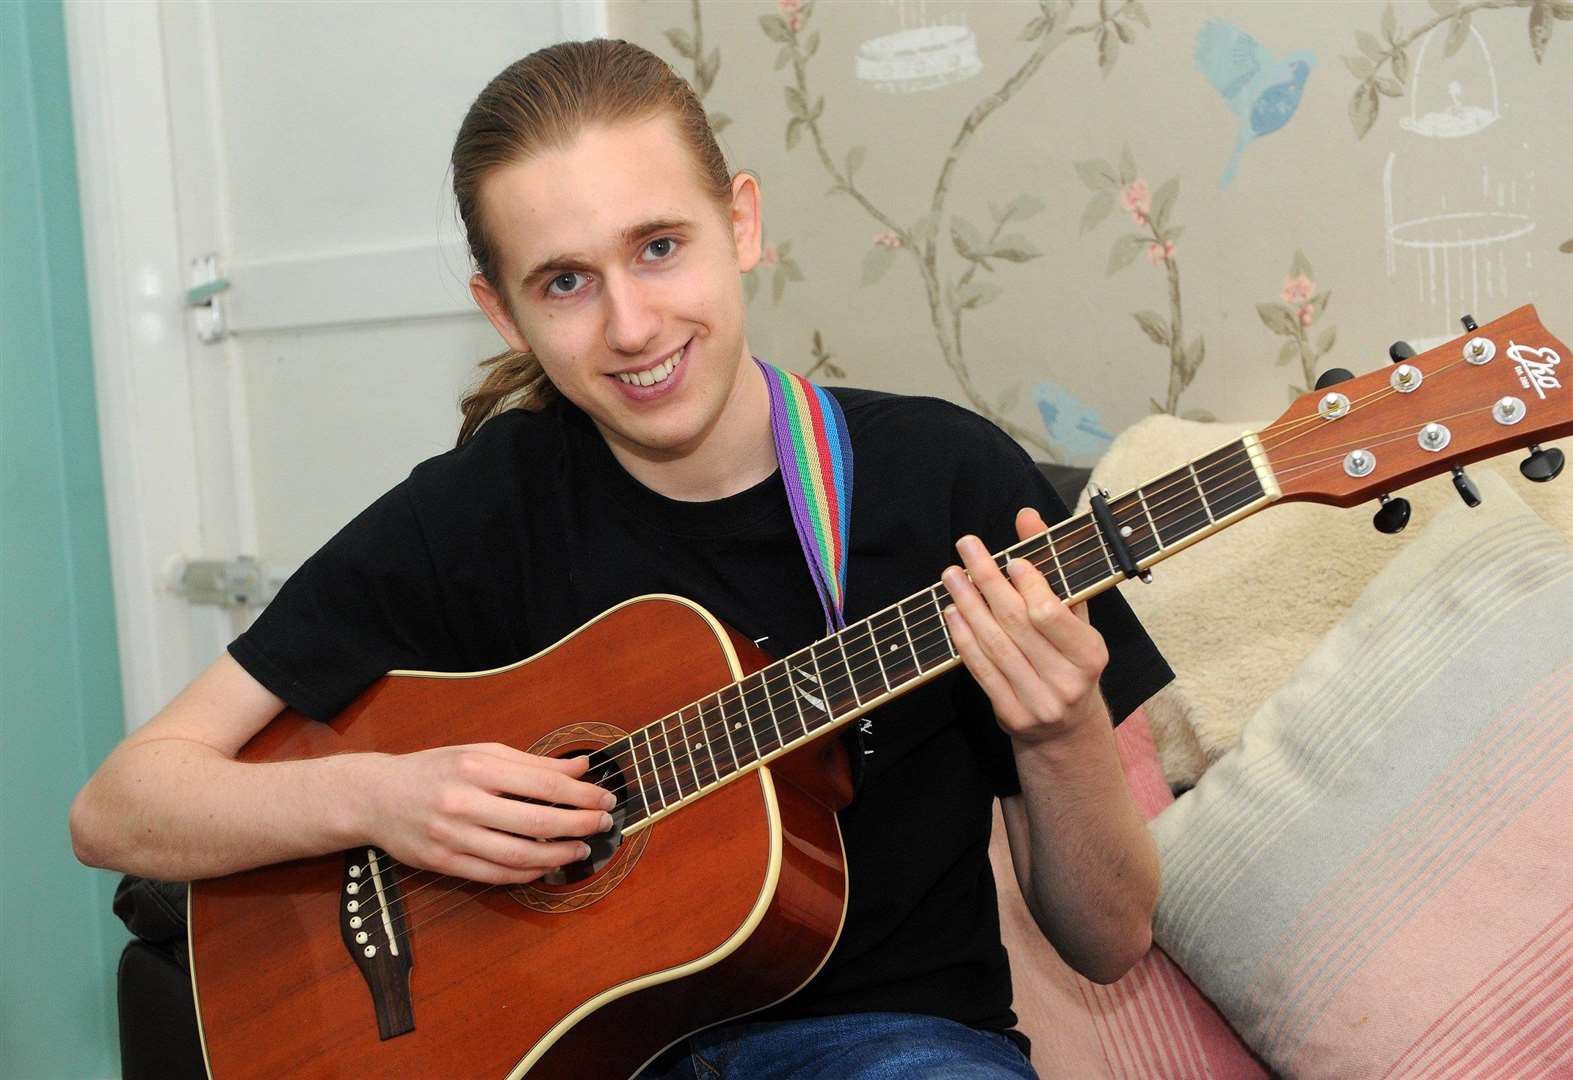 Music-lover Jack to take to London stage for contest